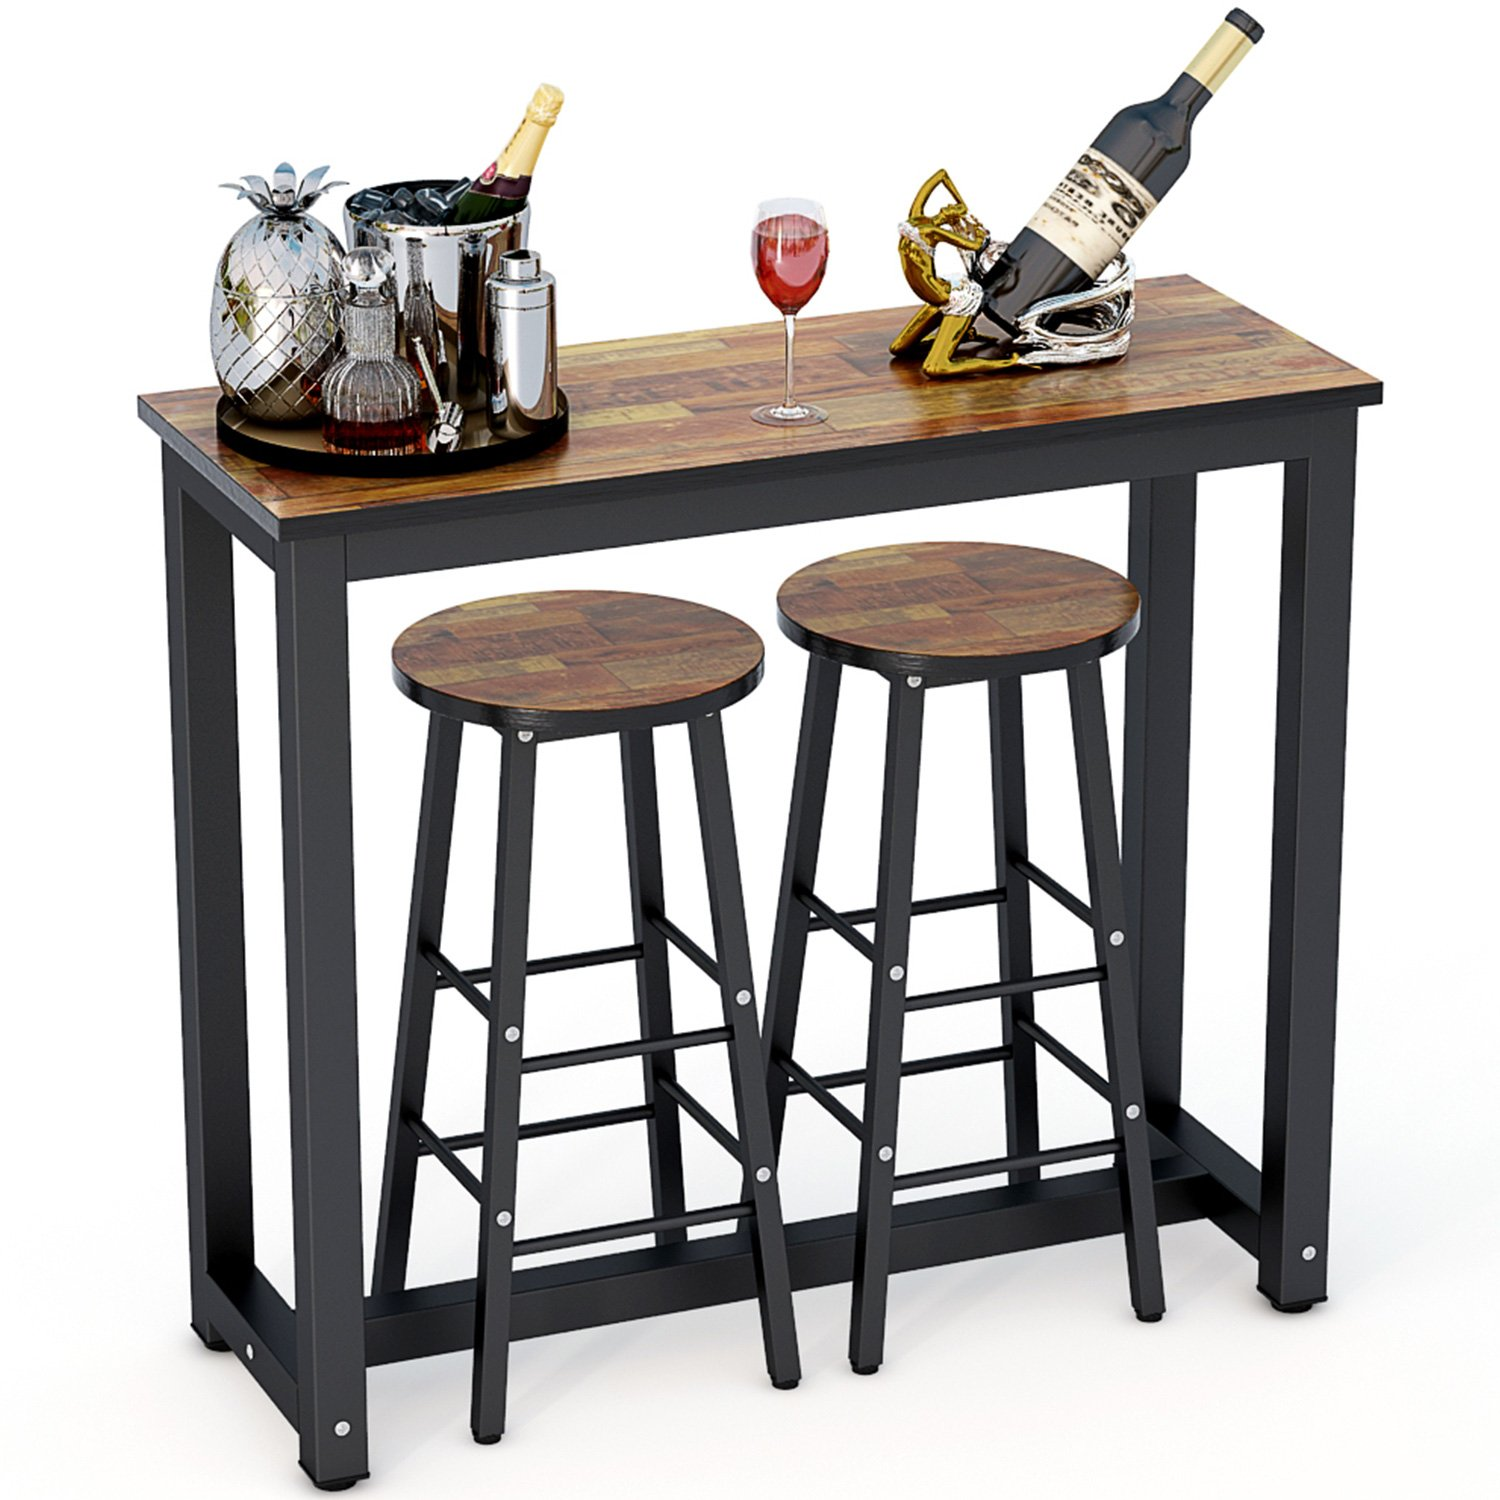 Tribesigns 3-Piece Pub Table Set, Counter Height Dining Table Set with 2 Bar Stools for Kitchen, Breakfast Nook, Dining Room, Living Room, Small Space by Tribesigns